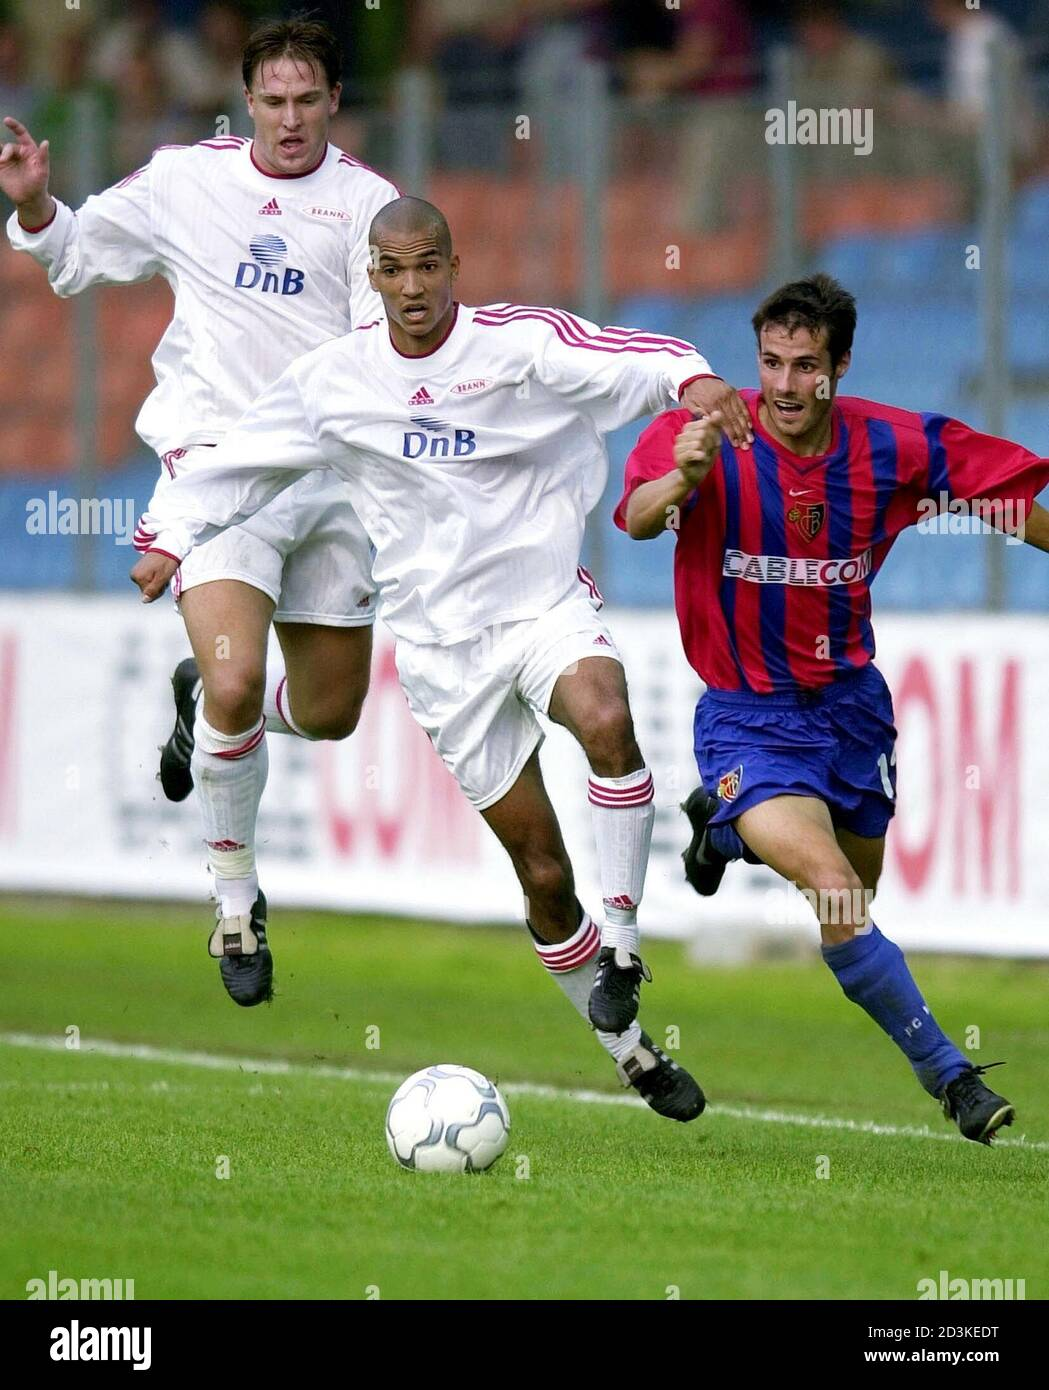 FC Basel's Sebastian Barberis (R) is held by Alex Valencia (M) of Norway's SK Brann Bergen as Thorstein Helstad (L) looks on during the UEFA Cup first round first leg match FC Basel vs. SK Brann Bergen in Zurich, Switzerland, September 12, 2000.  SIB/HM/JRE Stock Photo